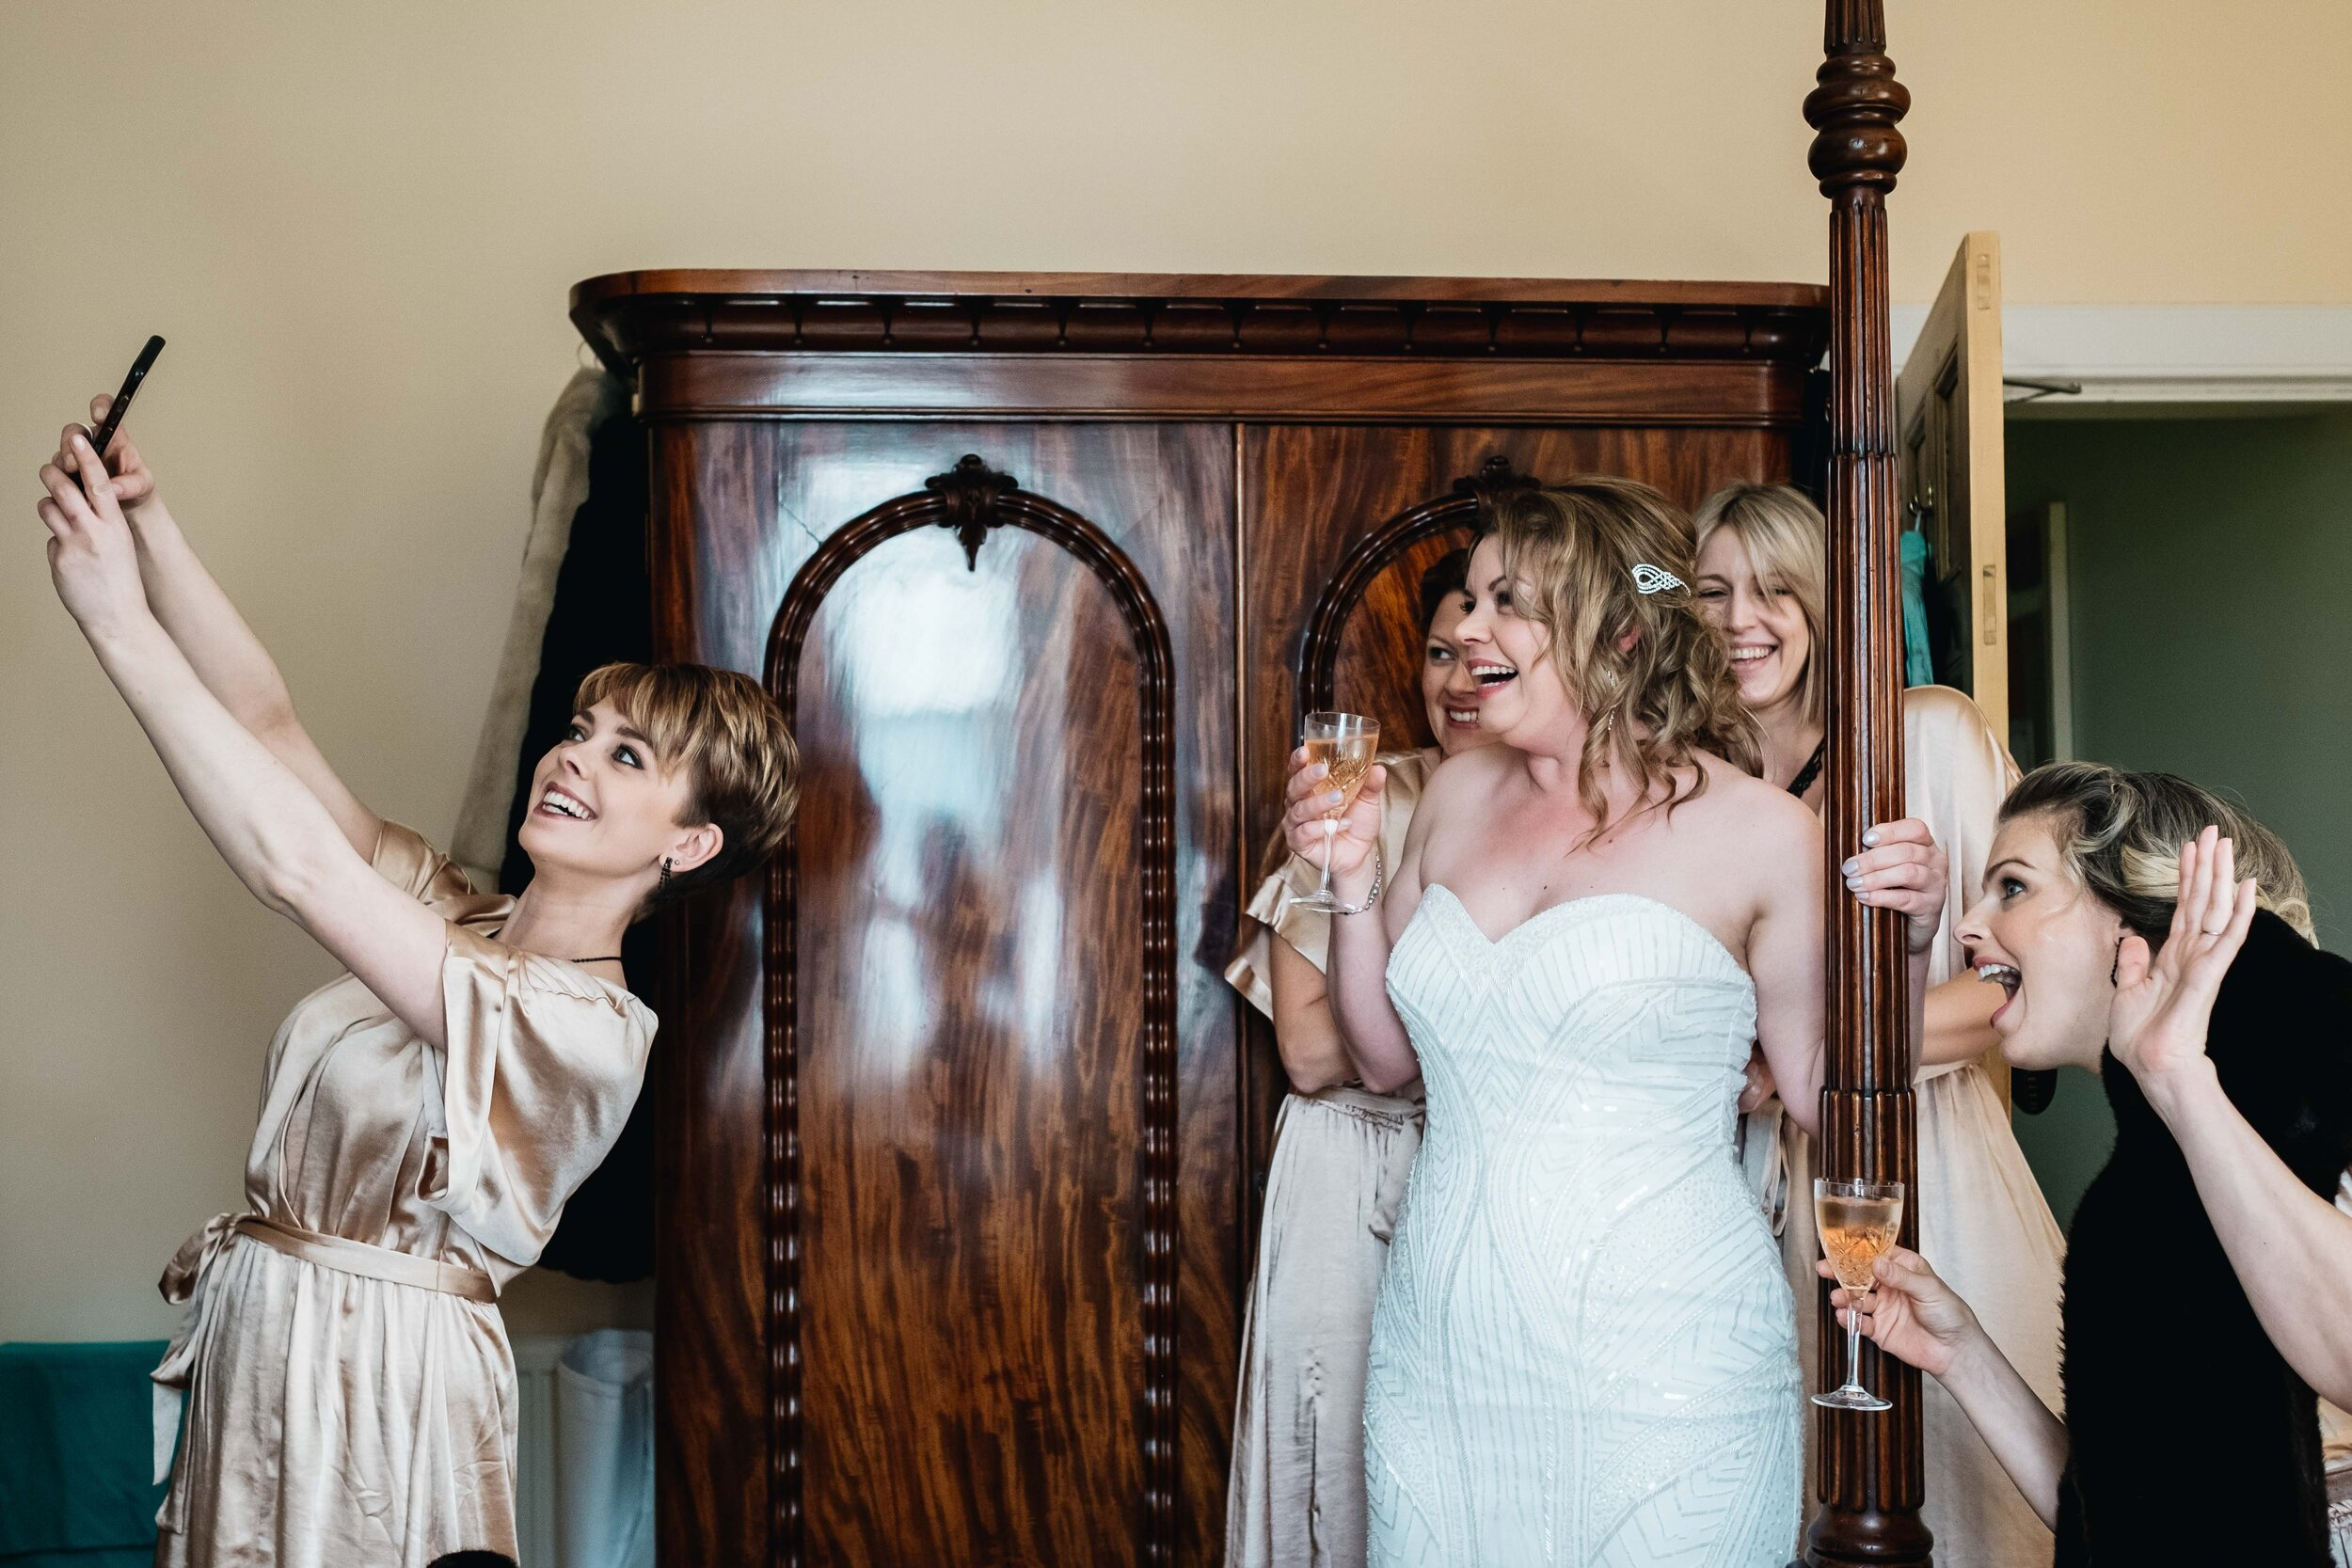 Bridesmaids take a selfie of the other bridesmaids and bride